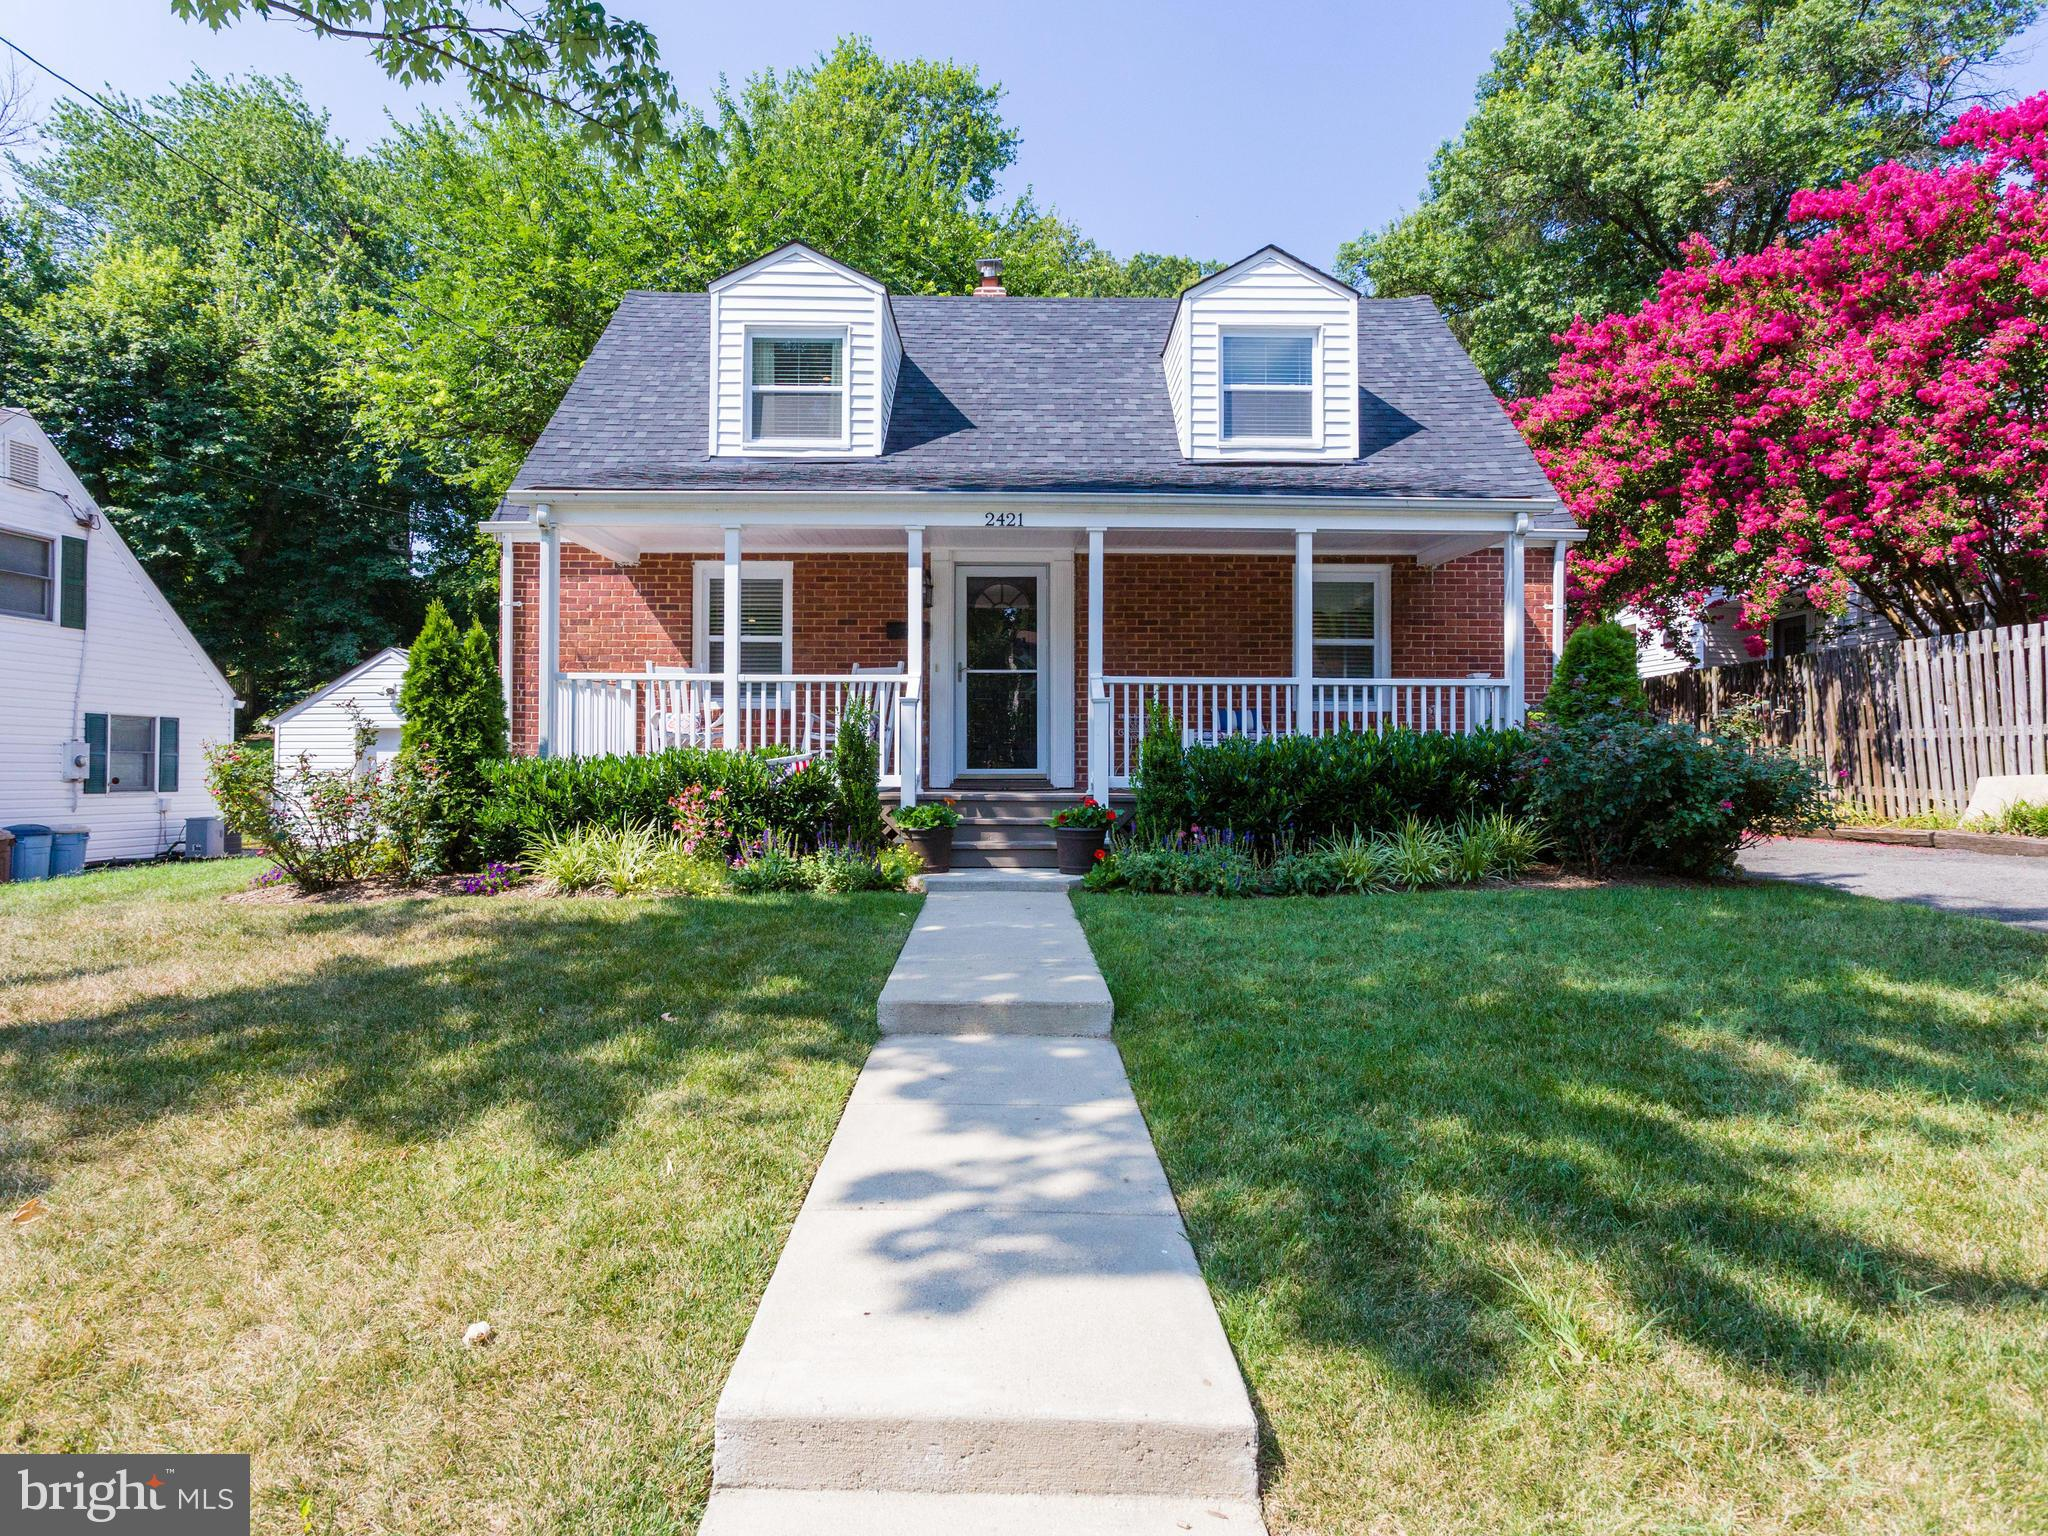 OPEN SAT1-3 Walking distance to Huntington Metro. Bright and cheerful 4 bedroom Cape Cod completely renovated from top to bottom 4 years ago. Gorgeous stainless steel and granite kitchen w/ maple cabinets and a breakfast nook. Front porch and large back deck for entertaining and huge fenced in yard with shed. Hardwood floors on main level. No HOA